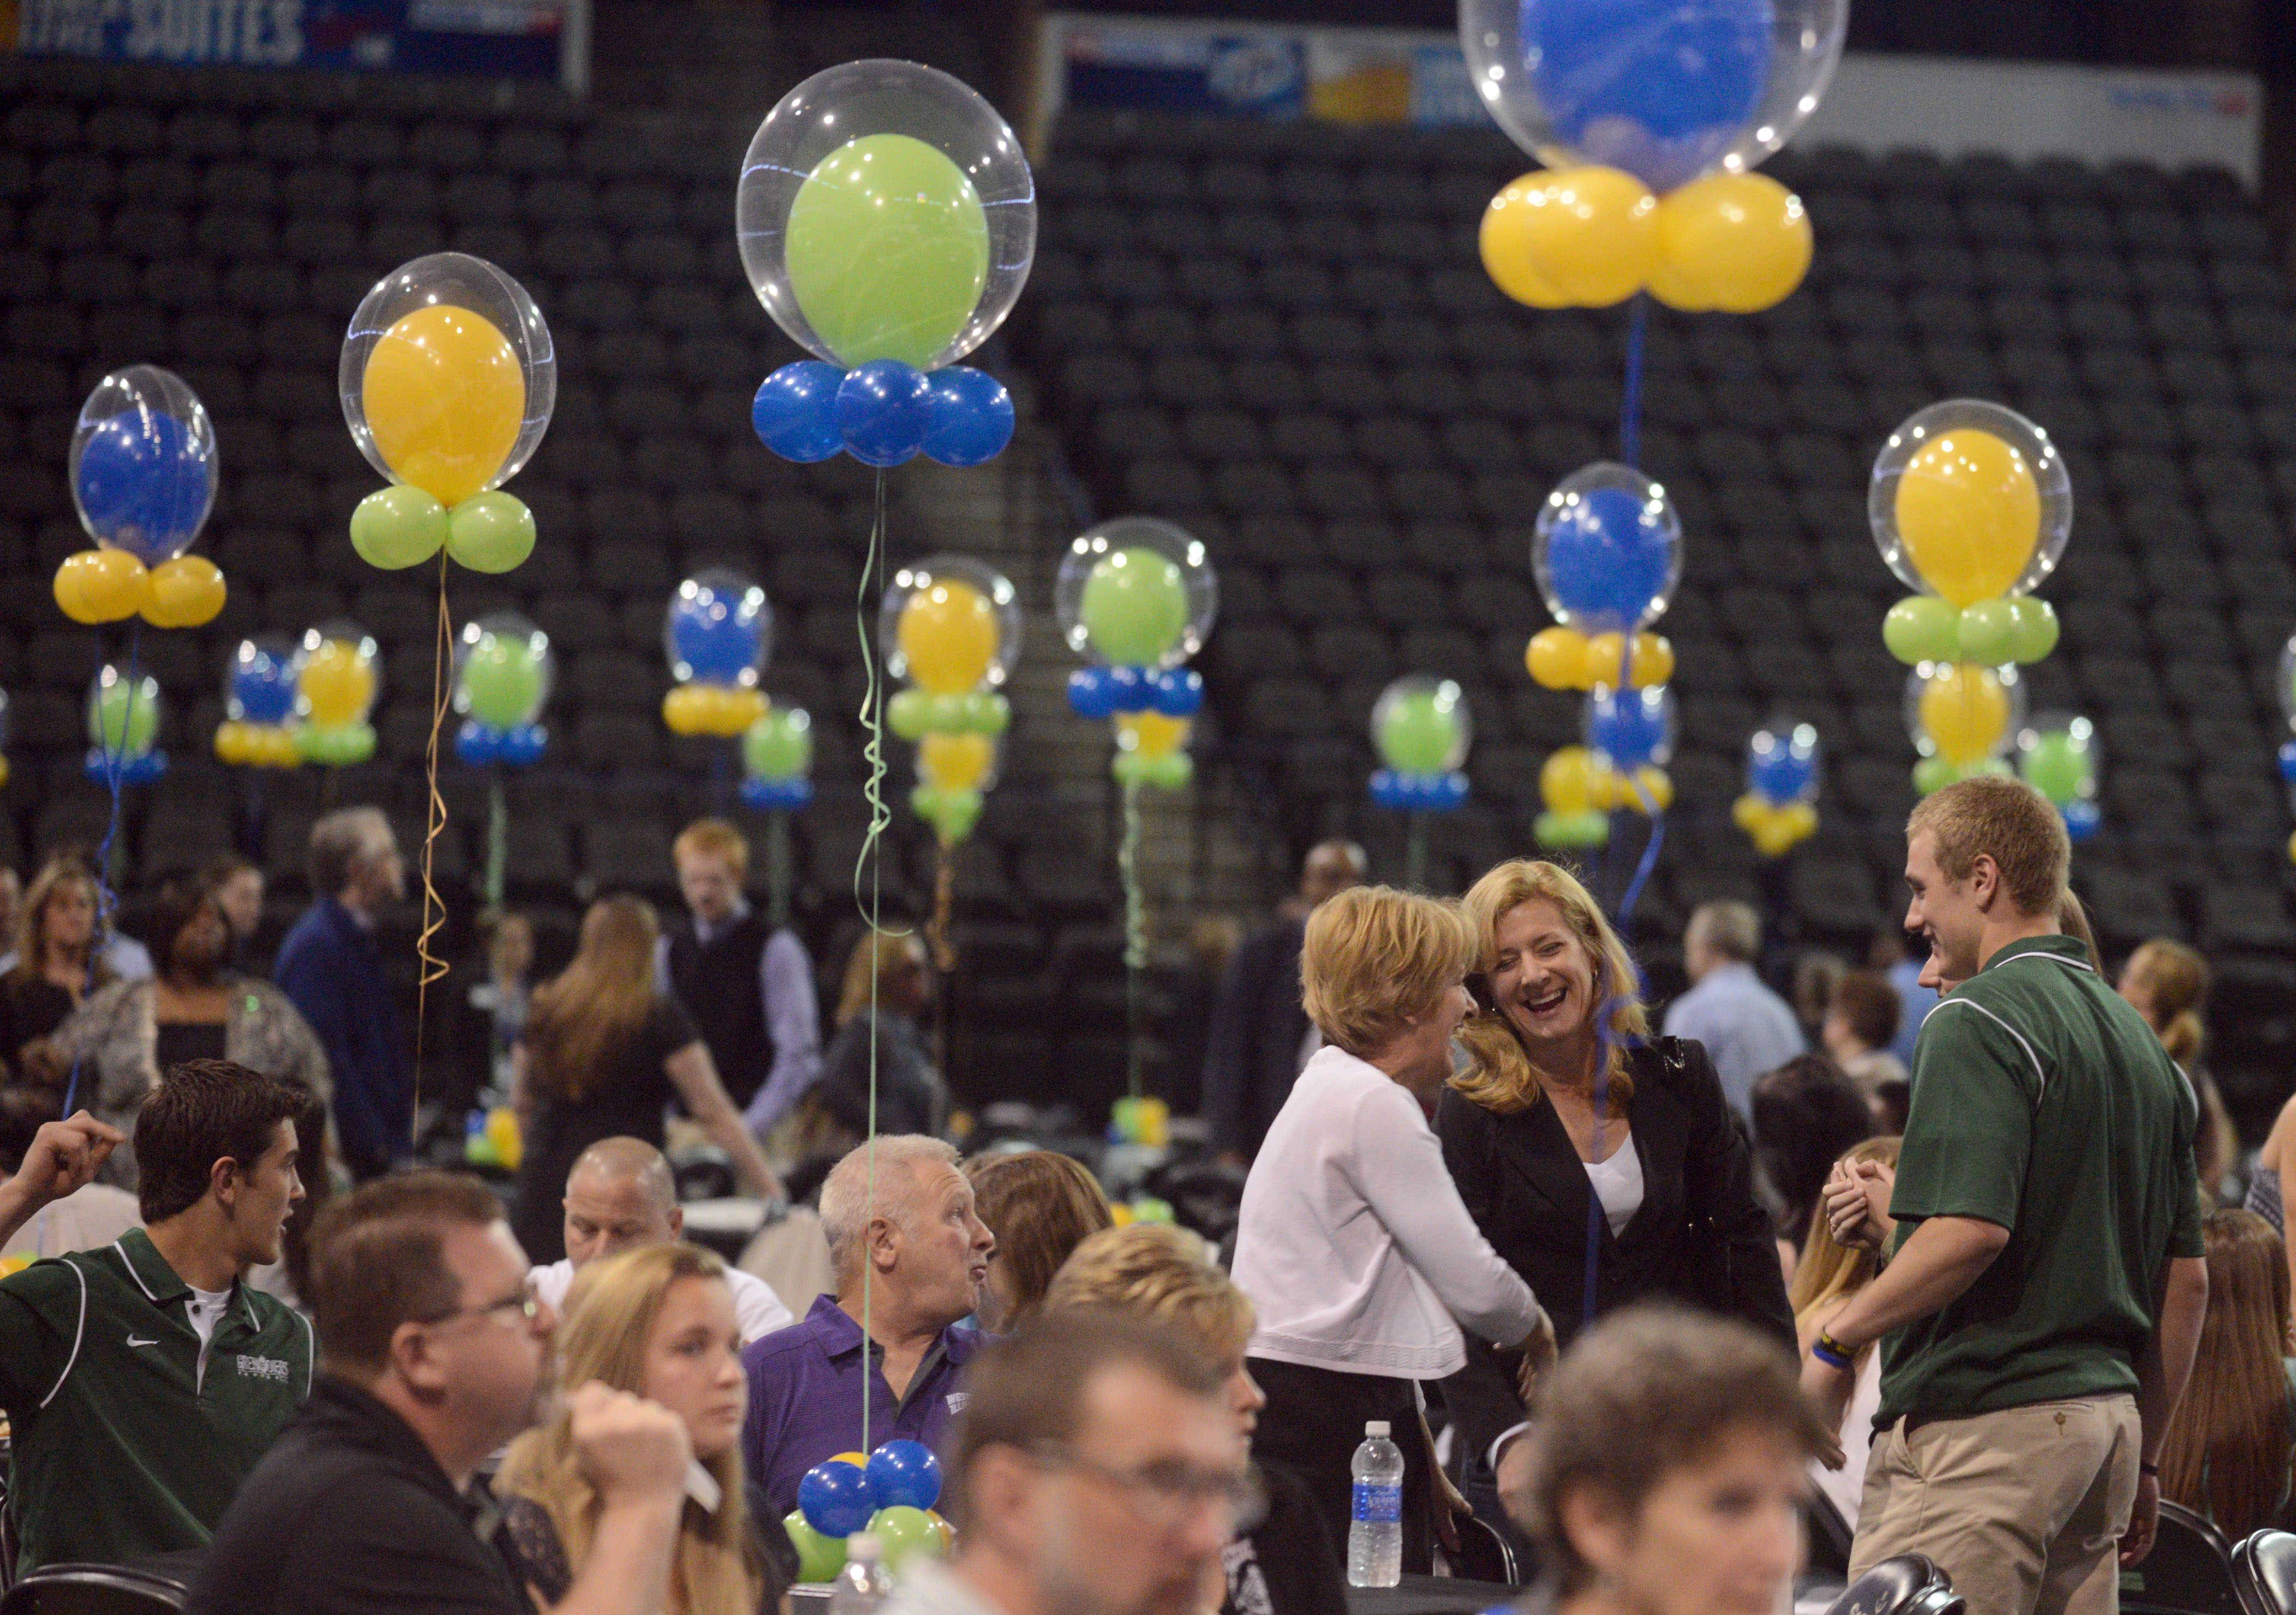 Images from the Daily Herald Prep Sports Excellence event at the Sears Centre in Hoffman Estates on Sunday afternoon.